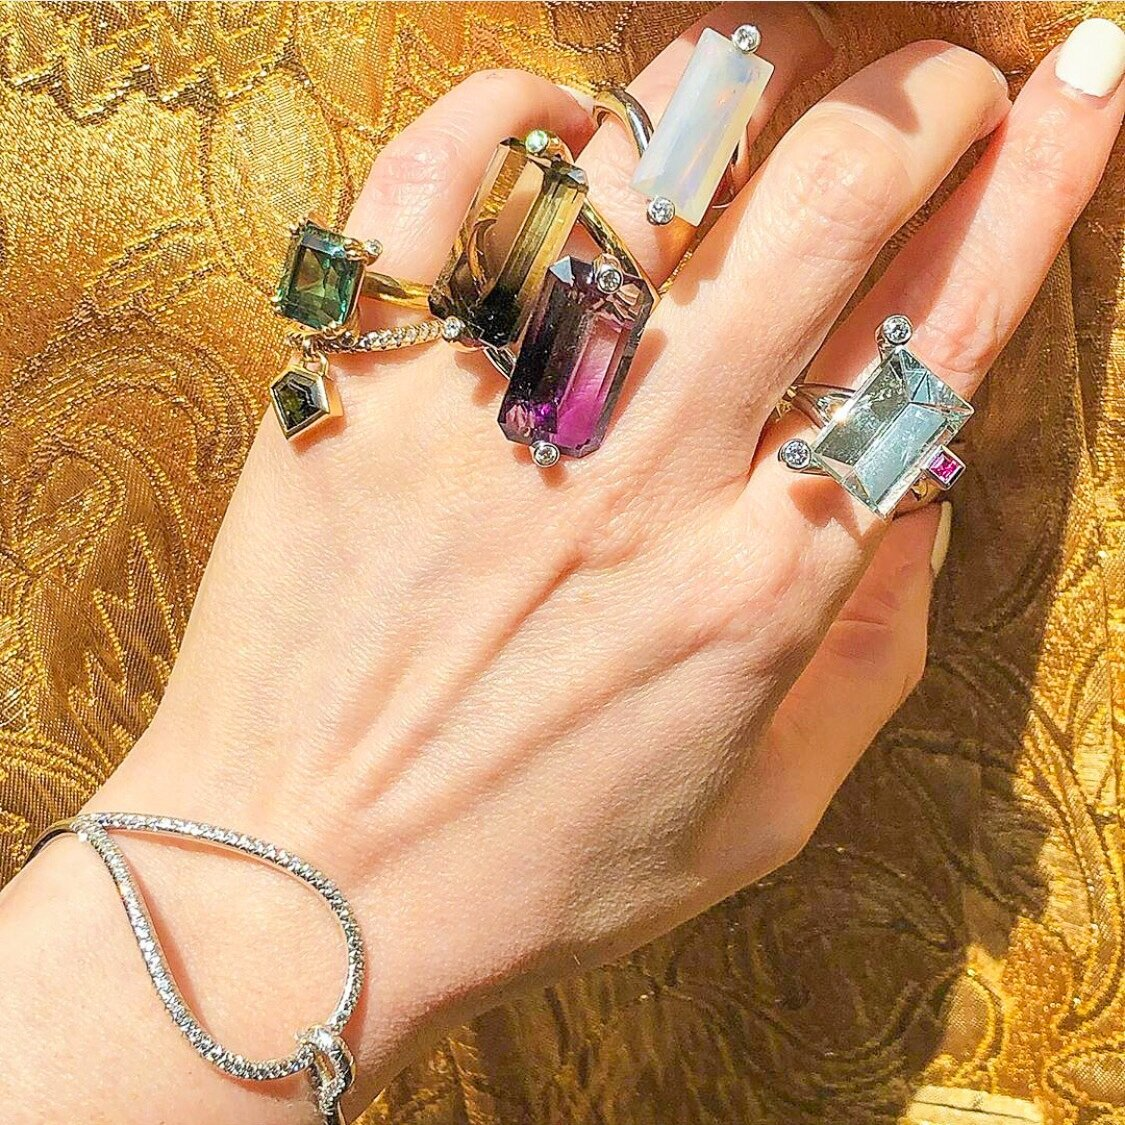 Julie's happy jewelry: her one of a kind statement ring and bespoke pieces